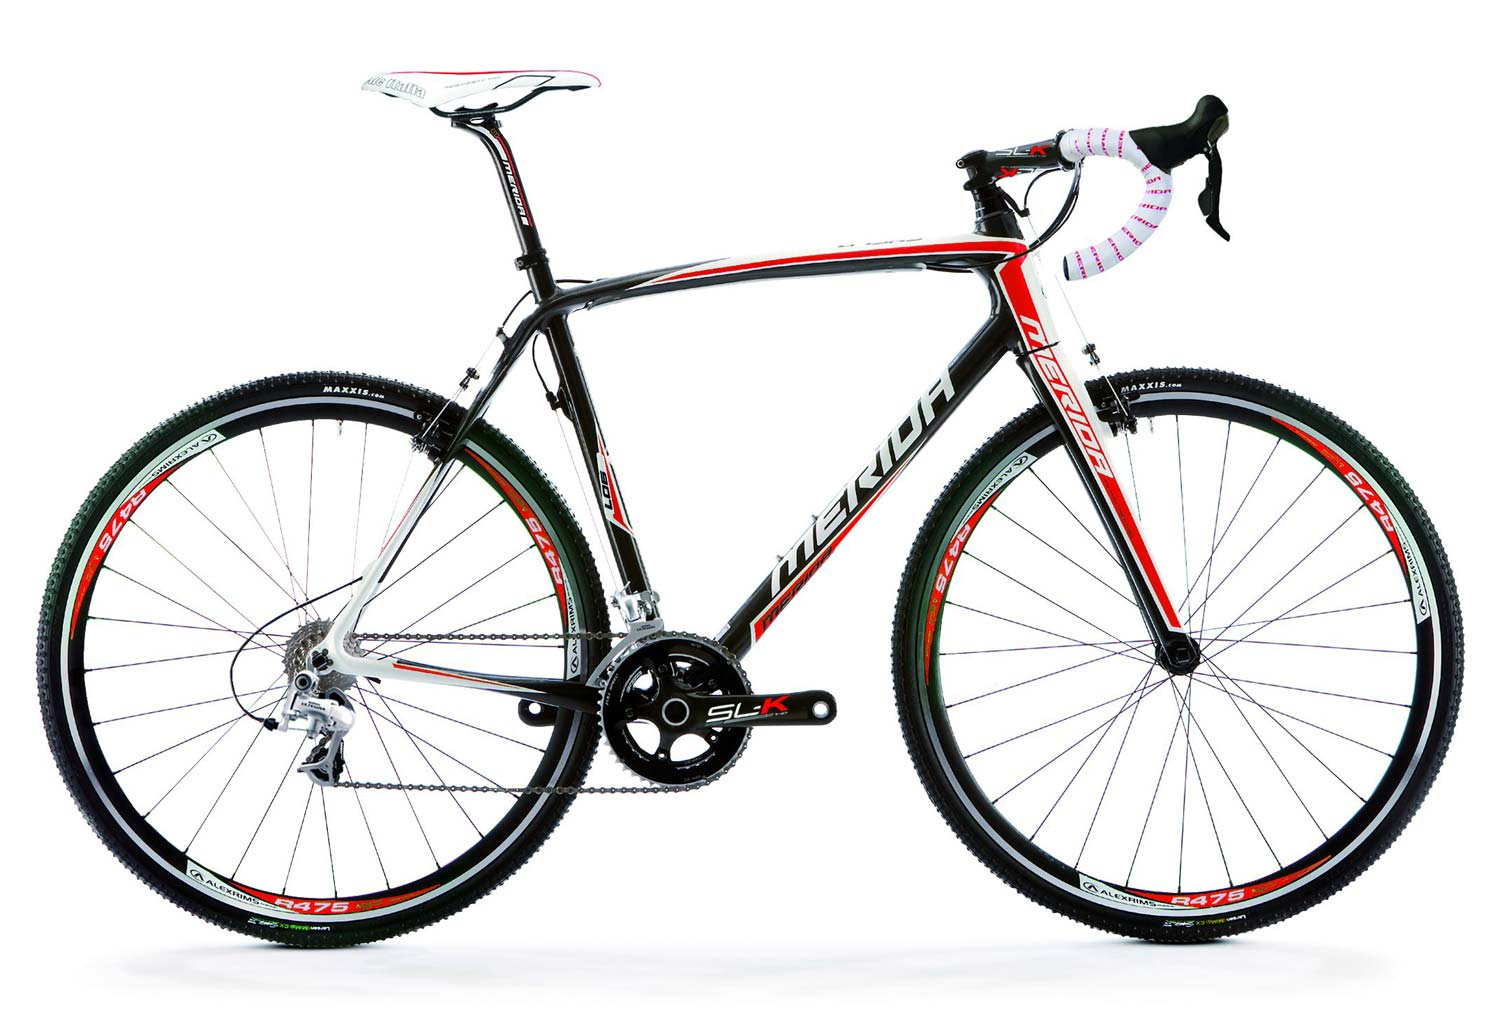 MERIDA CYCLOCROSS CARBON 907 – 2011